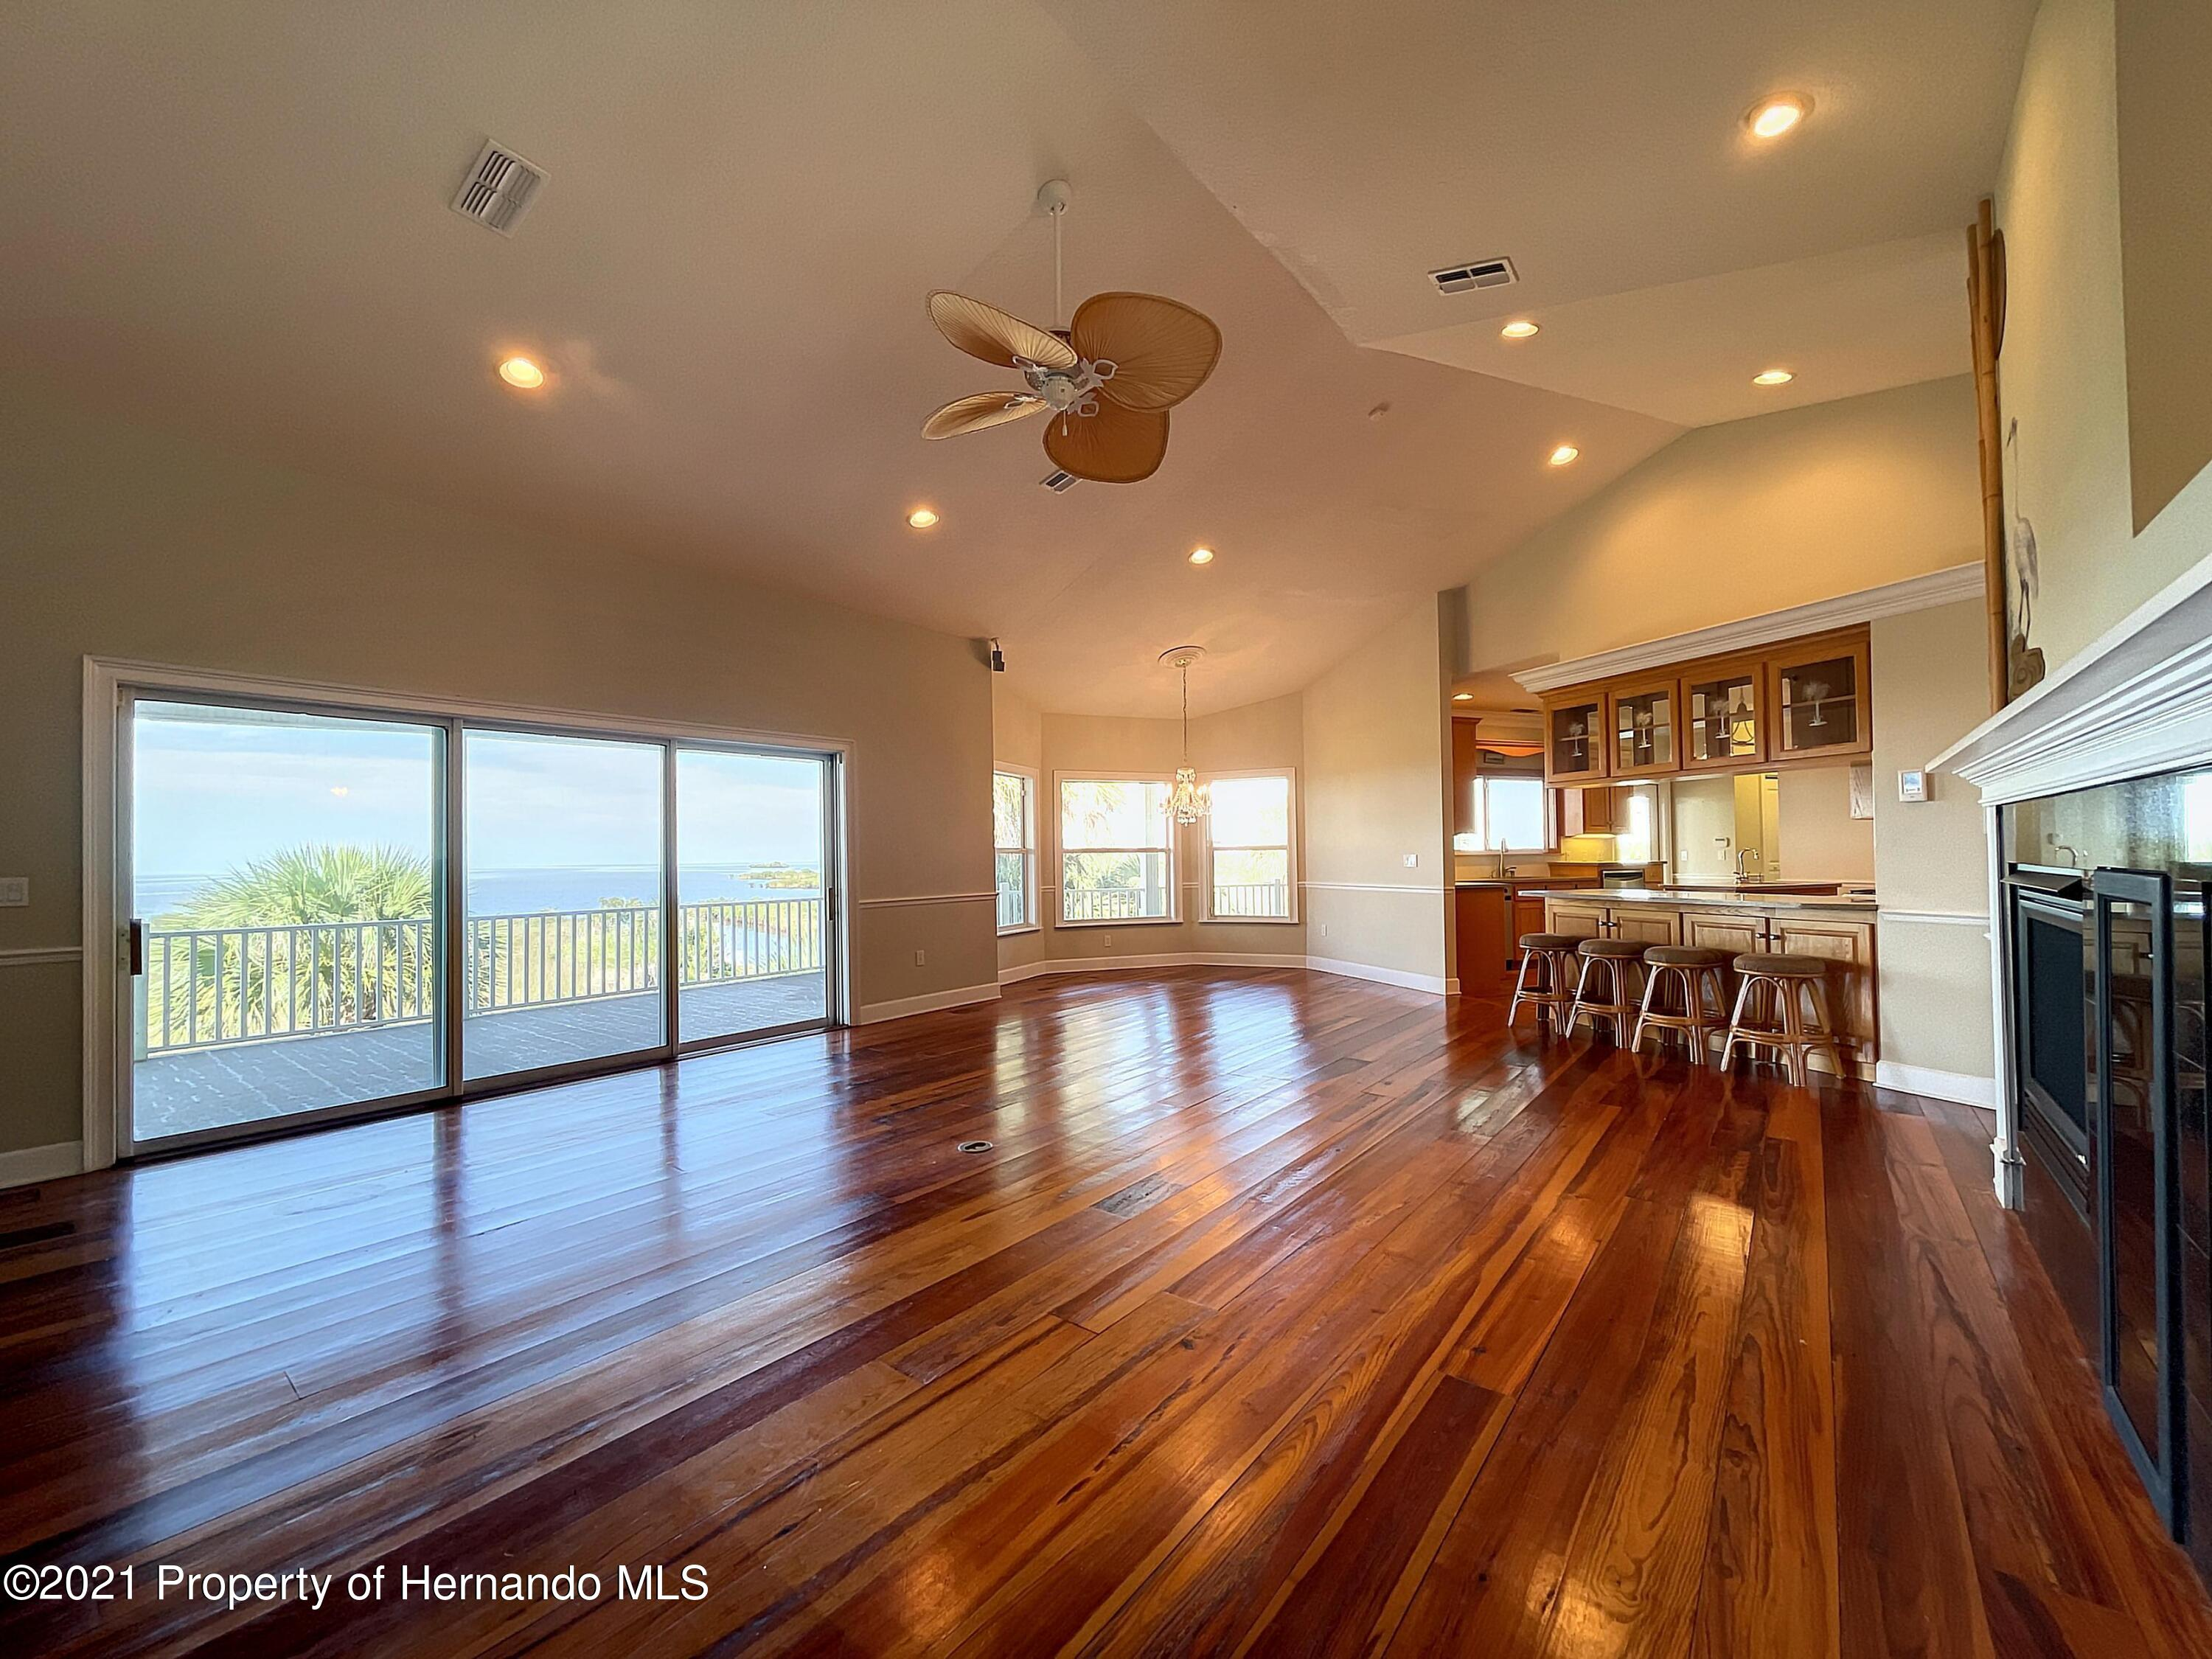 Image 10 of 101 For 1091 Osowaw Boulevard